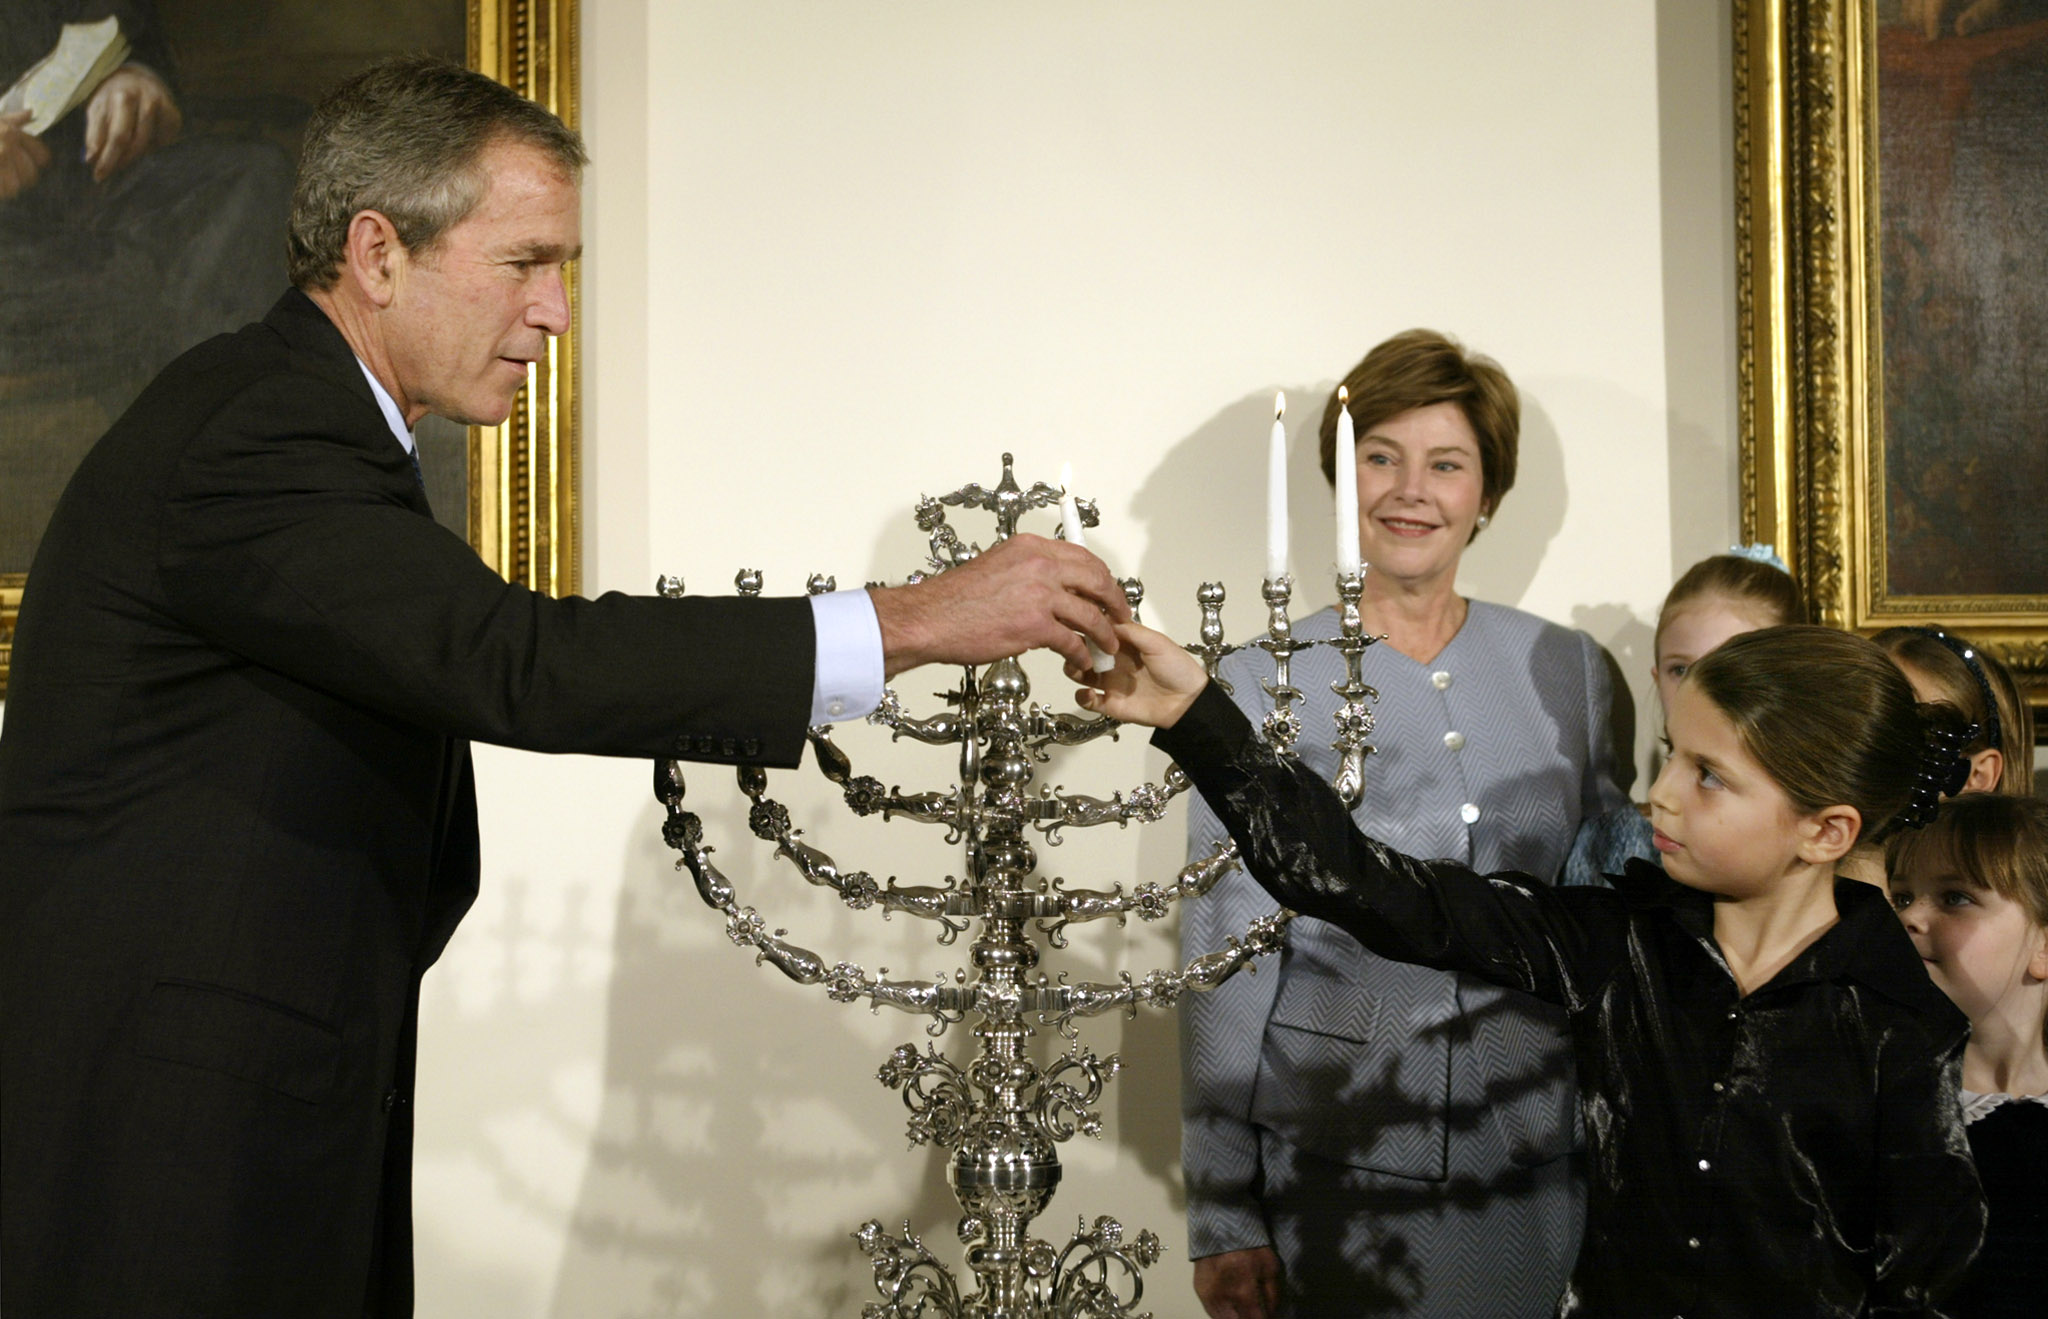 President George W. Bush joins eight-year-old Talia Lefkowitz as they light a hundred year-old menorah on loan from the Jewish Museum in New York during a Hanukkah reception in the White House December 10, 2001. Photo by Kevin Lamarque/Reuters